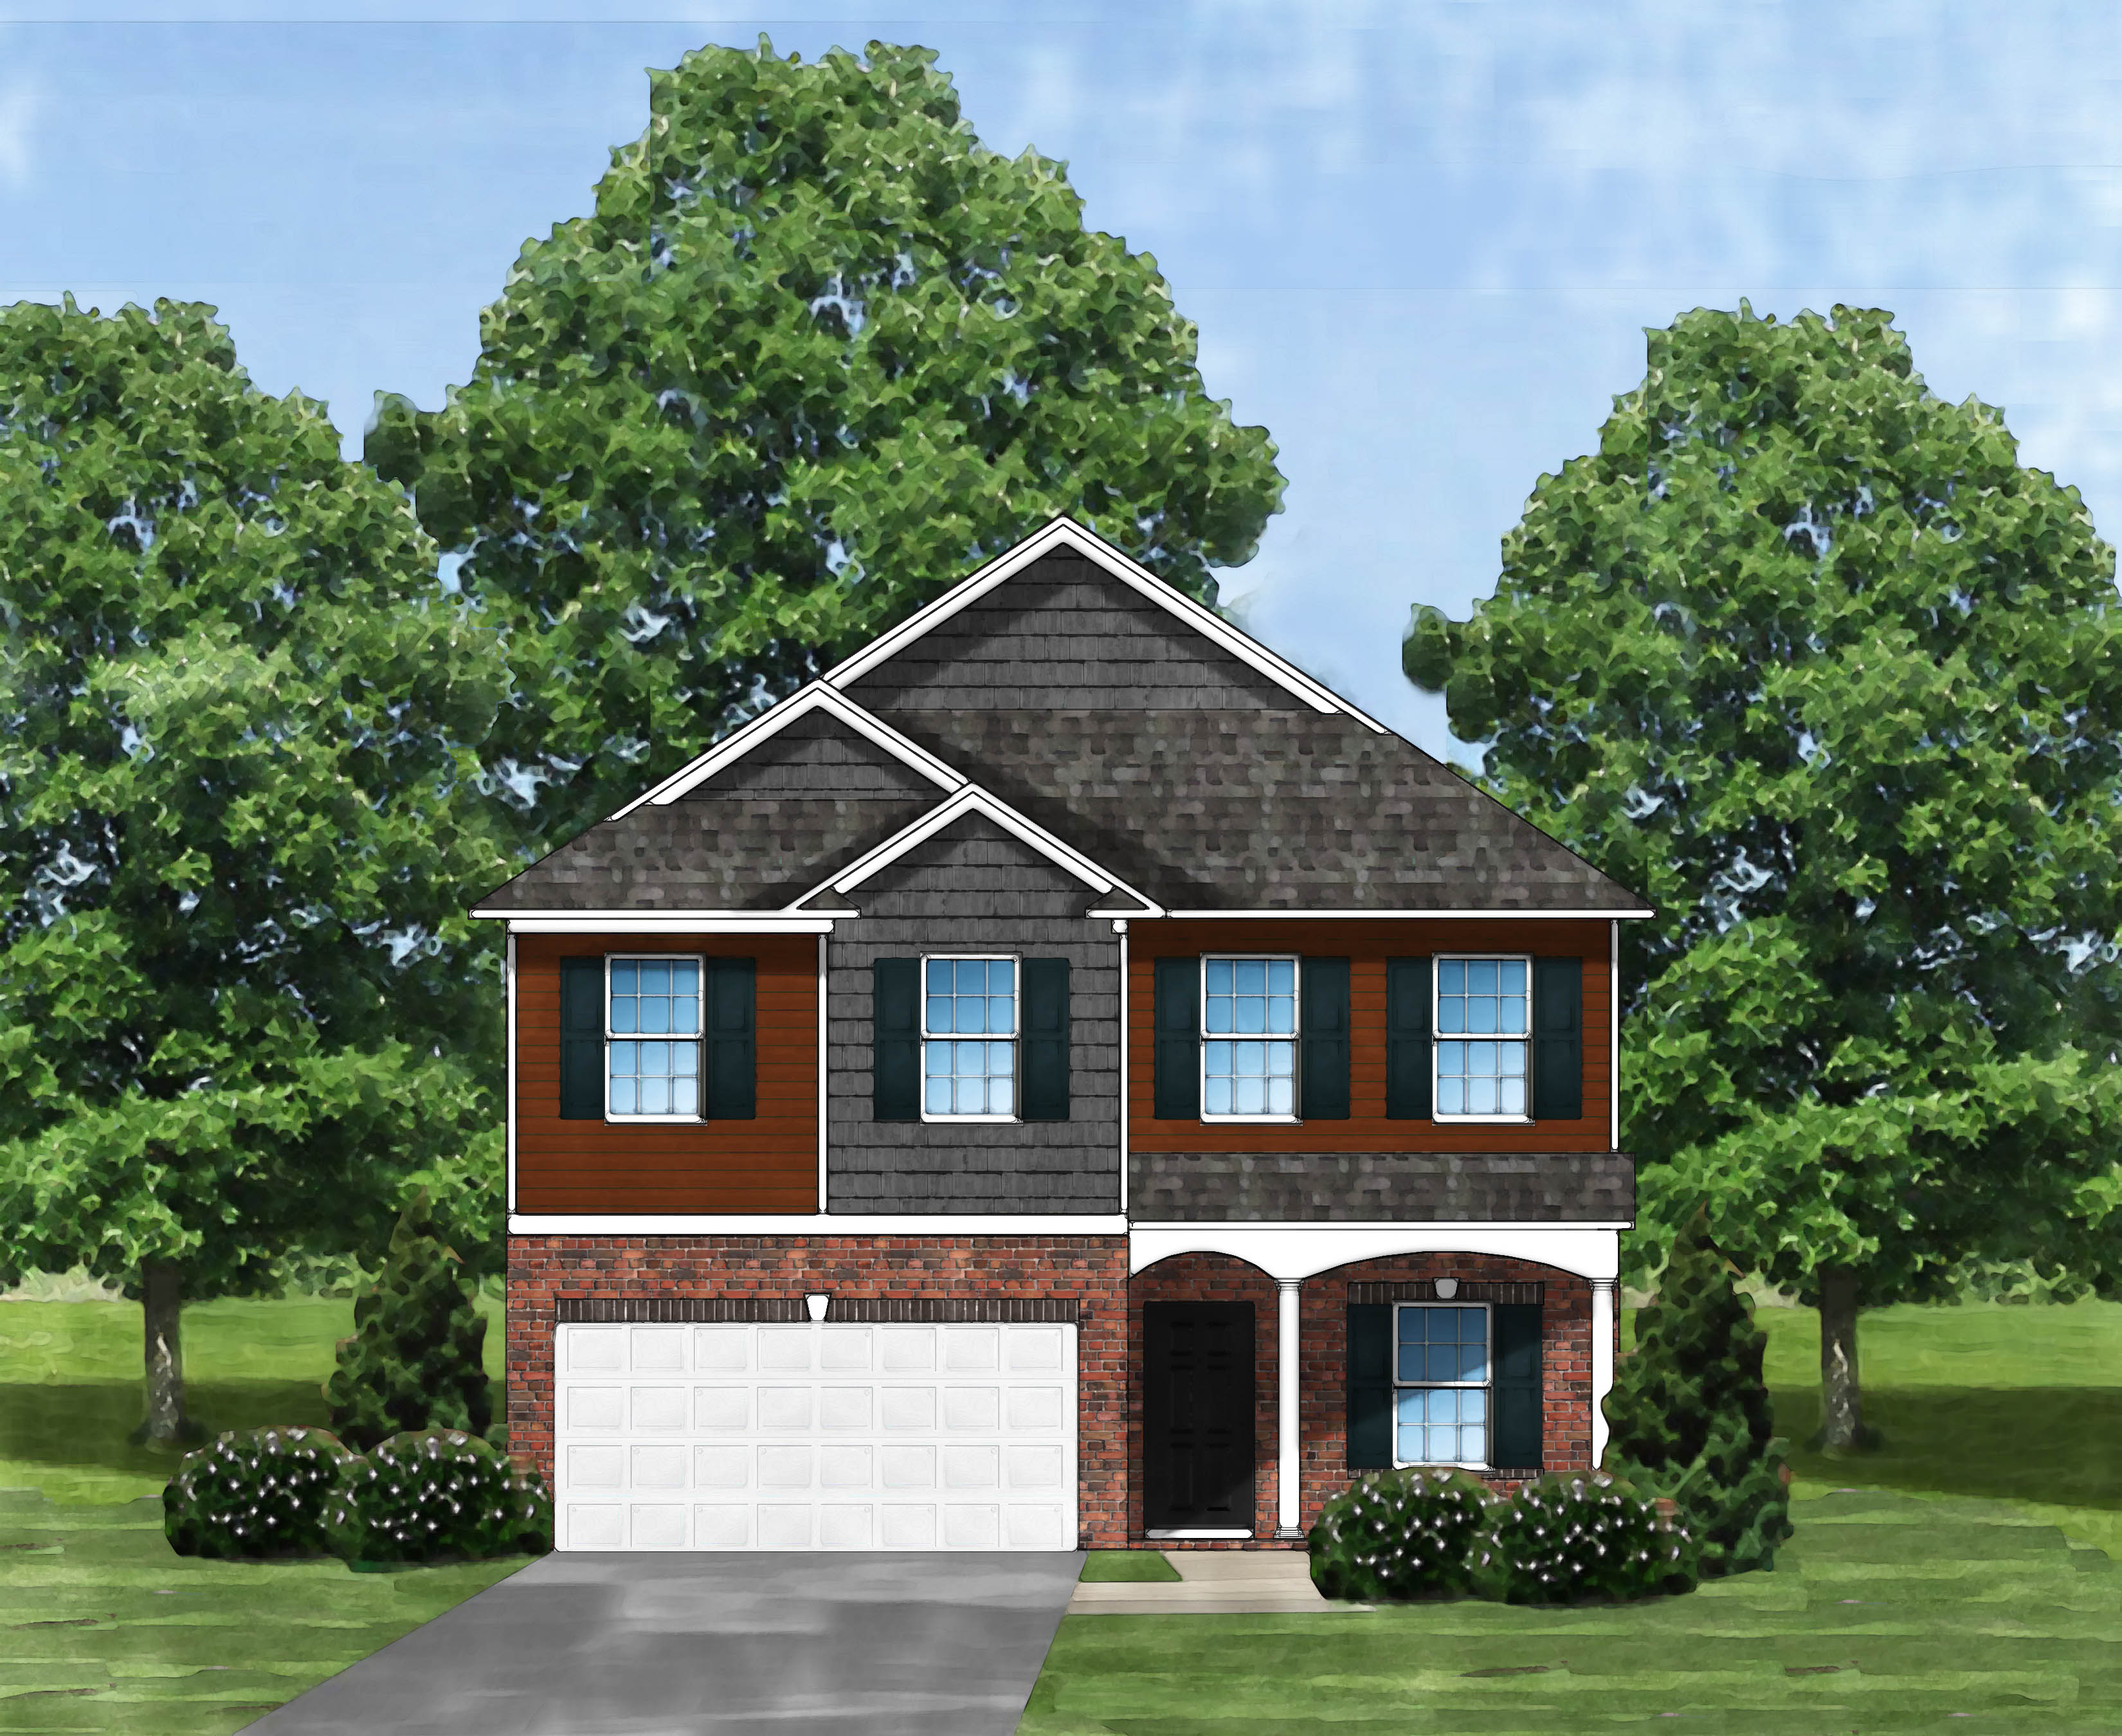 Kingstree II B by Great Southern Homes